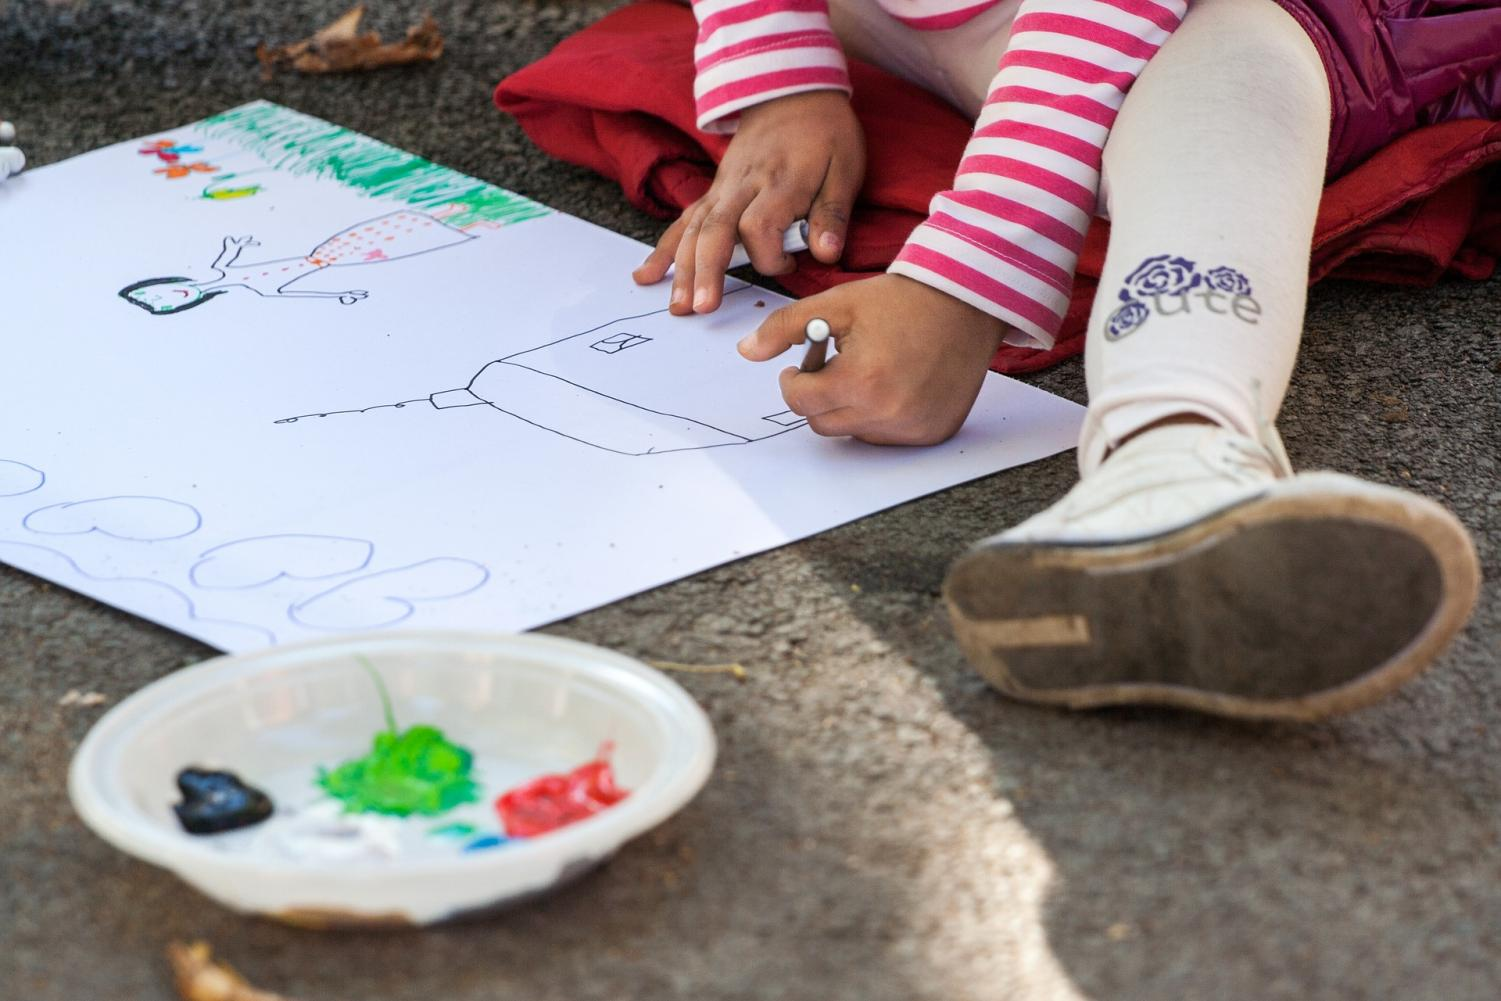 A study conducted by assistant professor Karen DeMoss of the University of New Mexico found that integrating art in the education of students of all achievement levels creates a more independent desire to learn, as well as improves memorization and problem-solving skills. https://creativecommons.org/licenses/by/2.0/